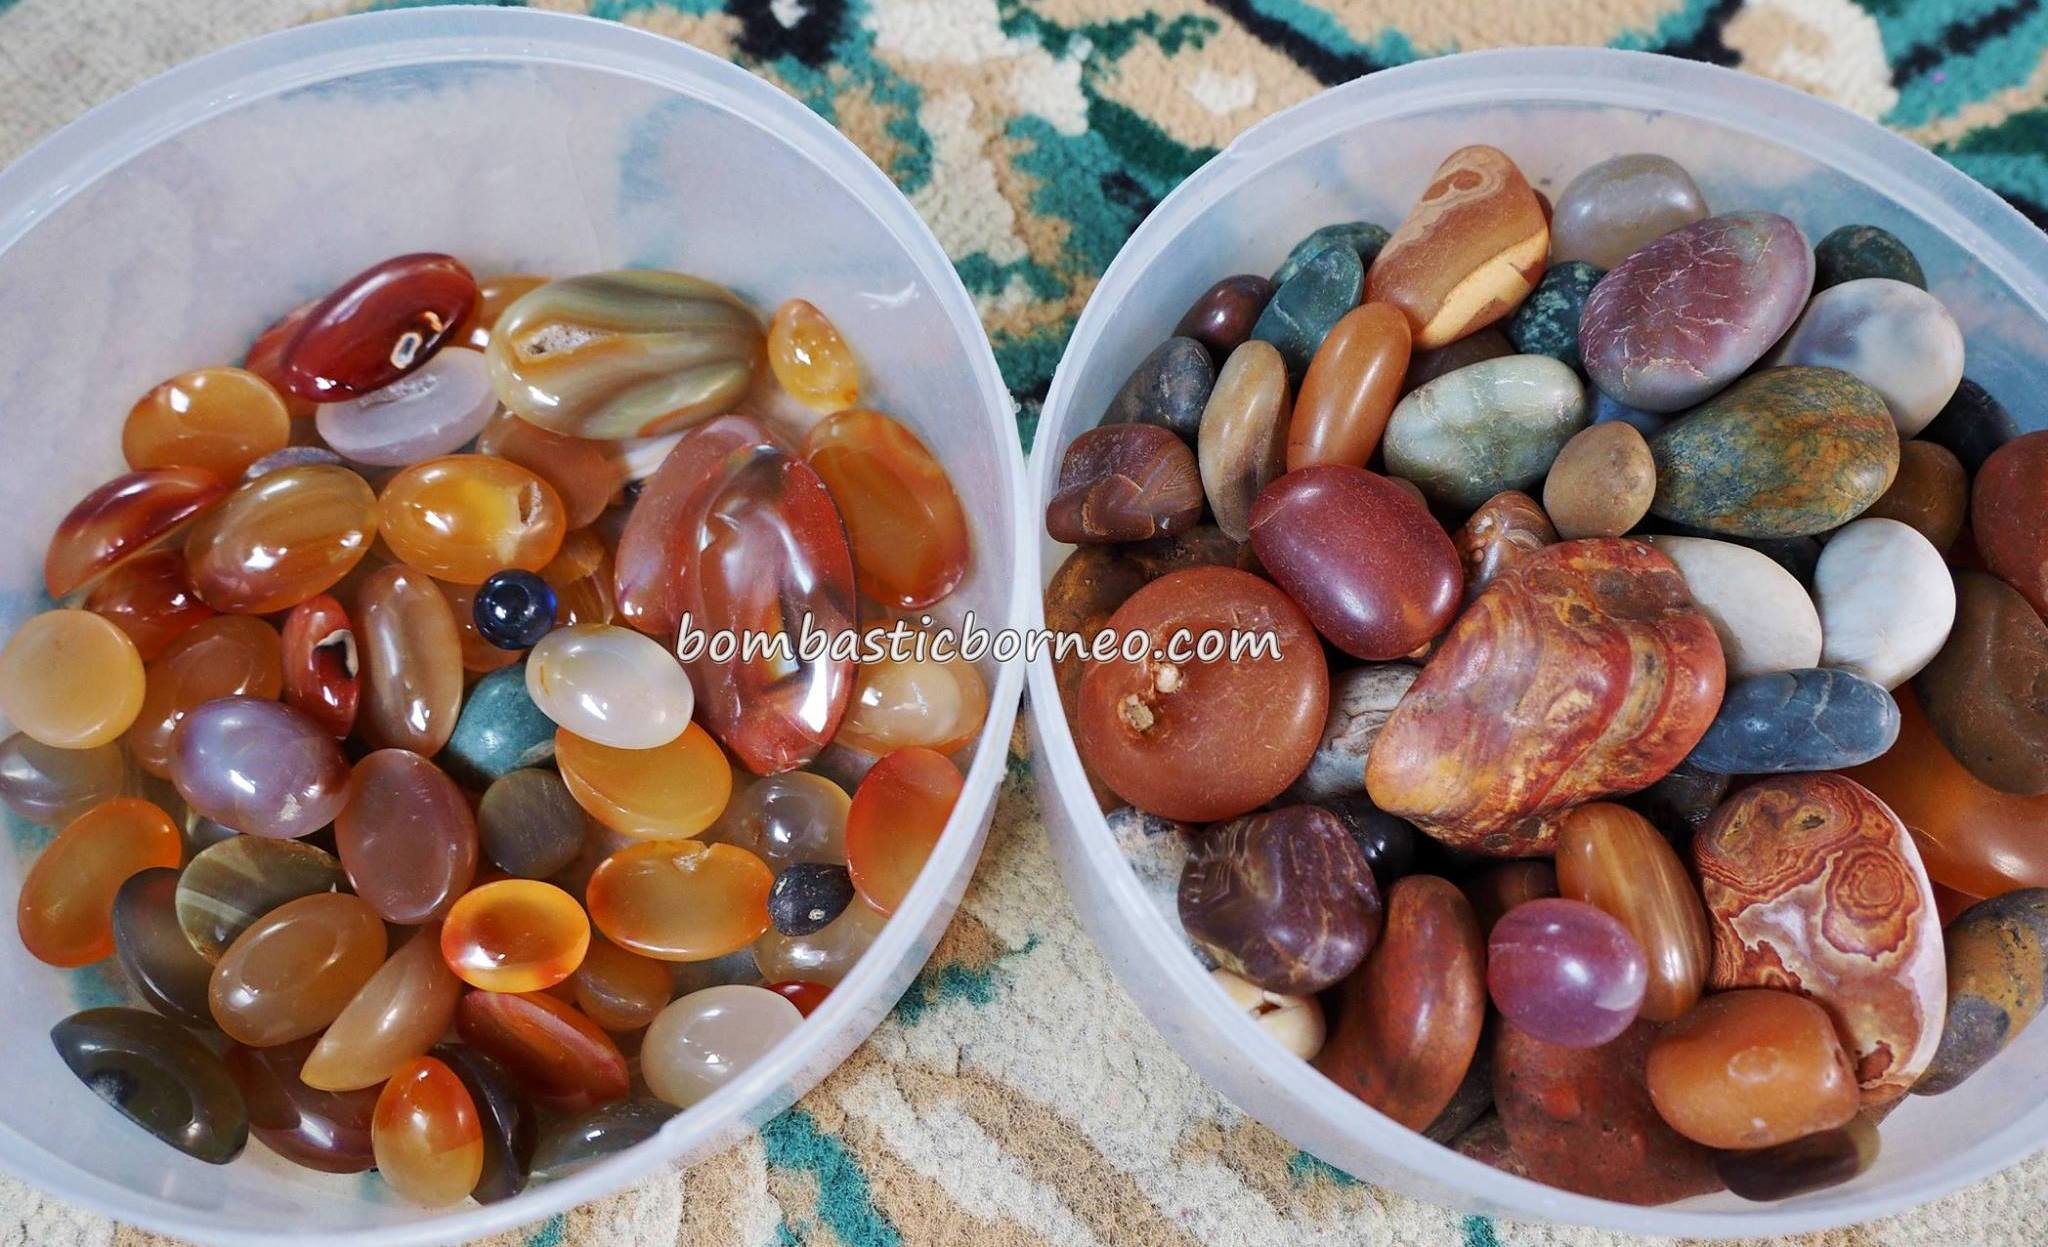 gemstones, semiprecious stones, destination, Borneo, Lunsara, Suka Maju, Kapuas Hulu, Kampung Melayu, malay village, Sungai Kapuas, Tourism, tourist attraction, travel guide, crossborder, 西加里曼丹玛瑙